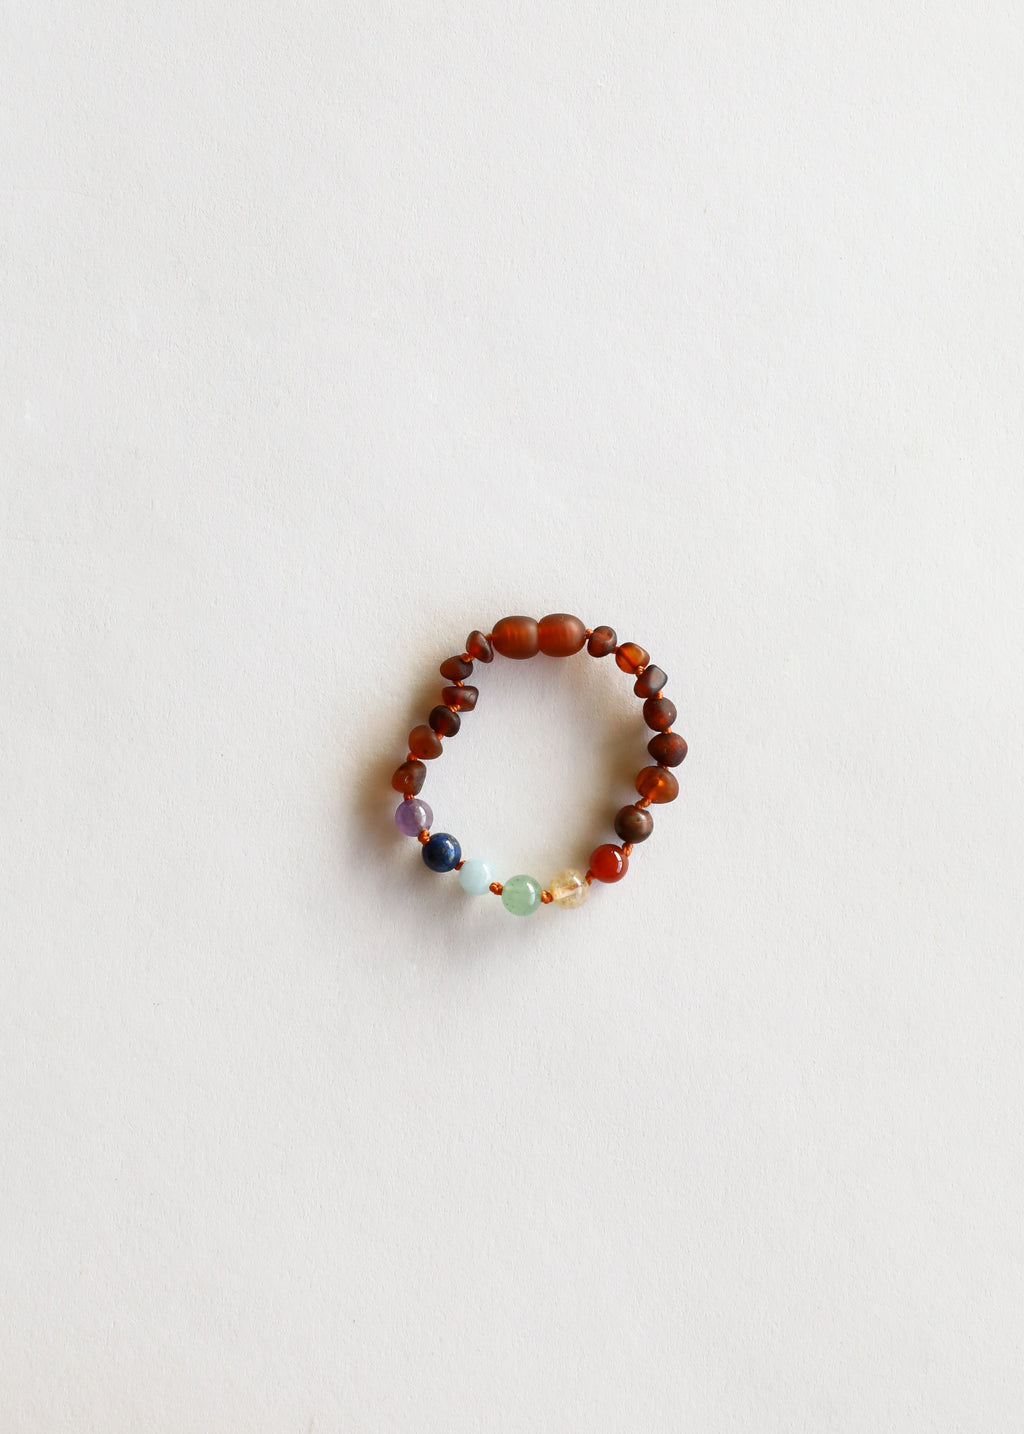 Raw Cognac Amber + CHAKRA Crystals || Anklet or Bracelet